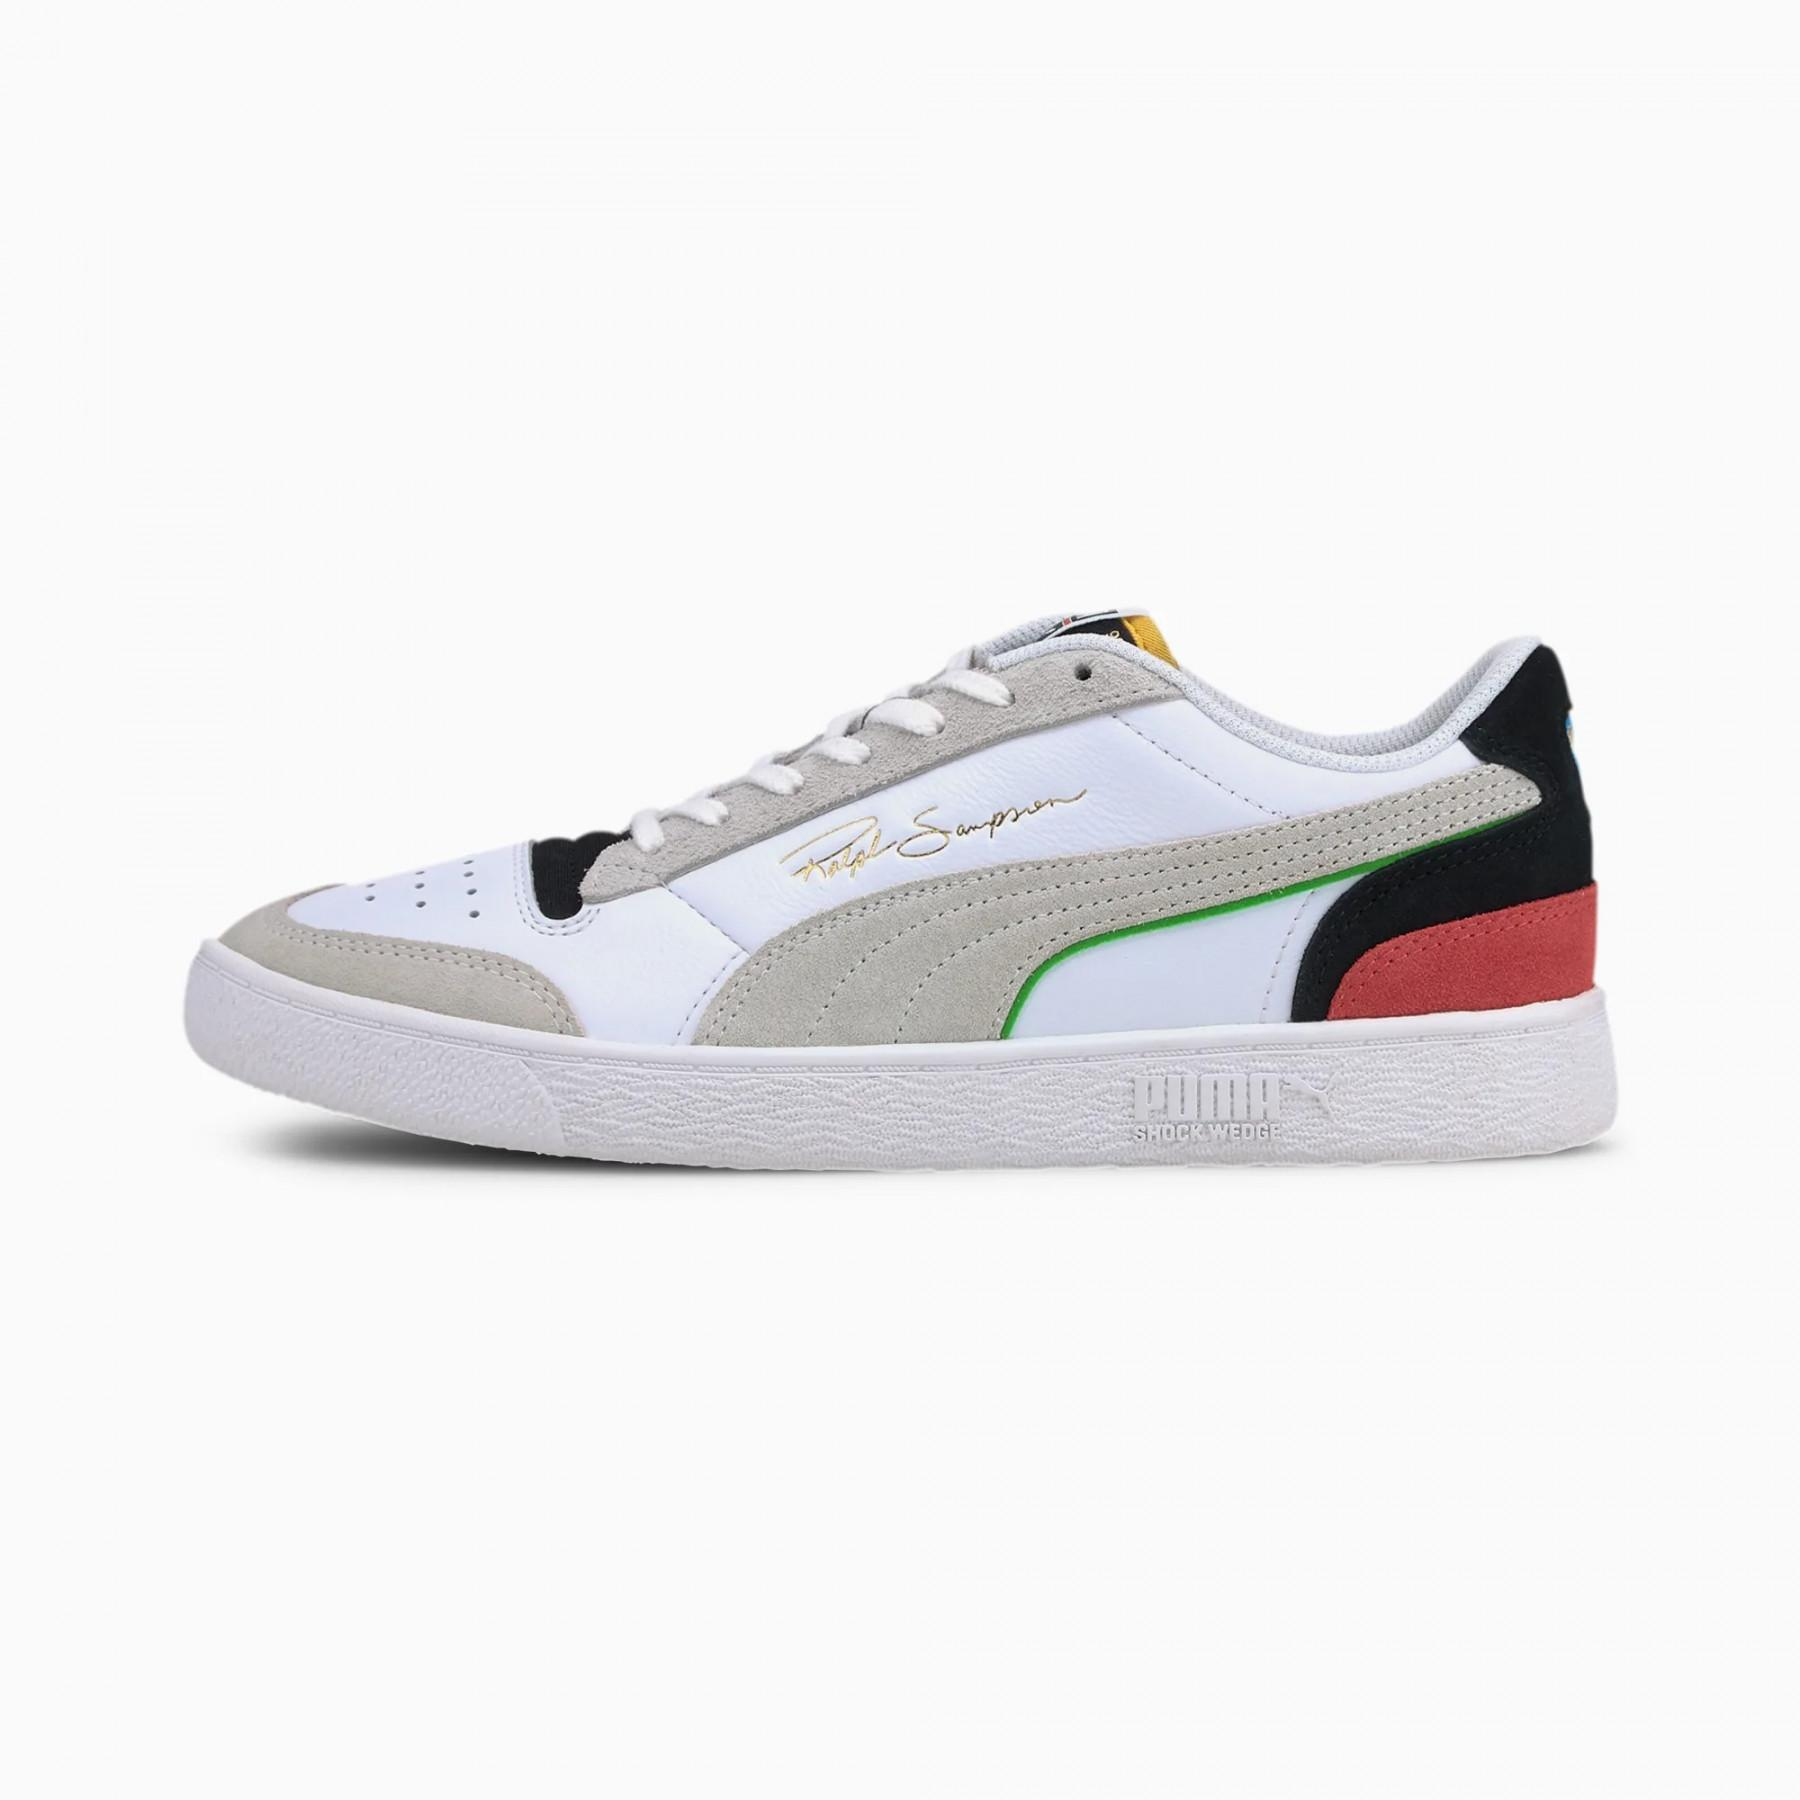 Baskets Puma Ralph Sampson Signature